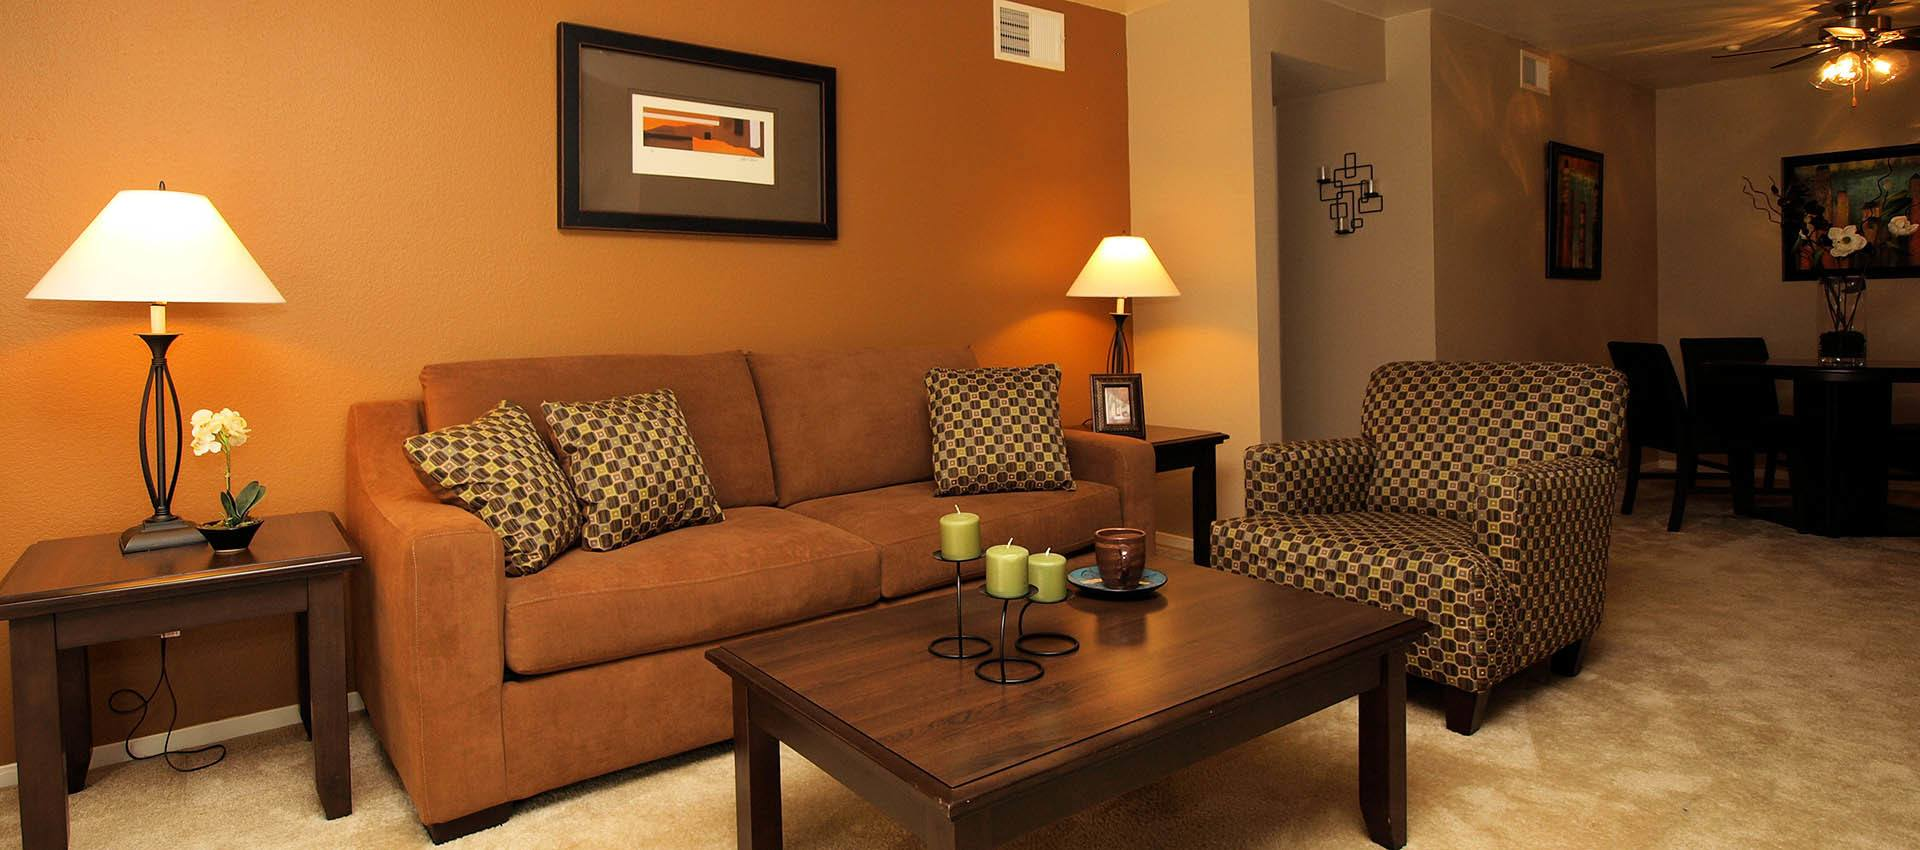 Standard Living Room at Hidden Lake Condominium Rentals in Sacramento, California